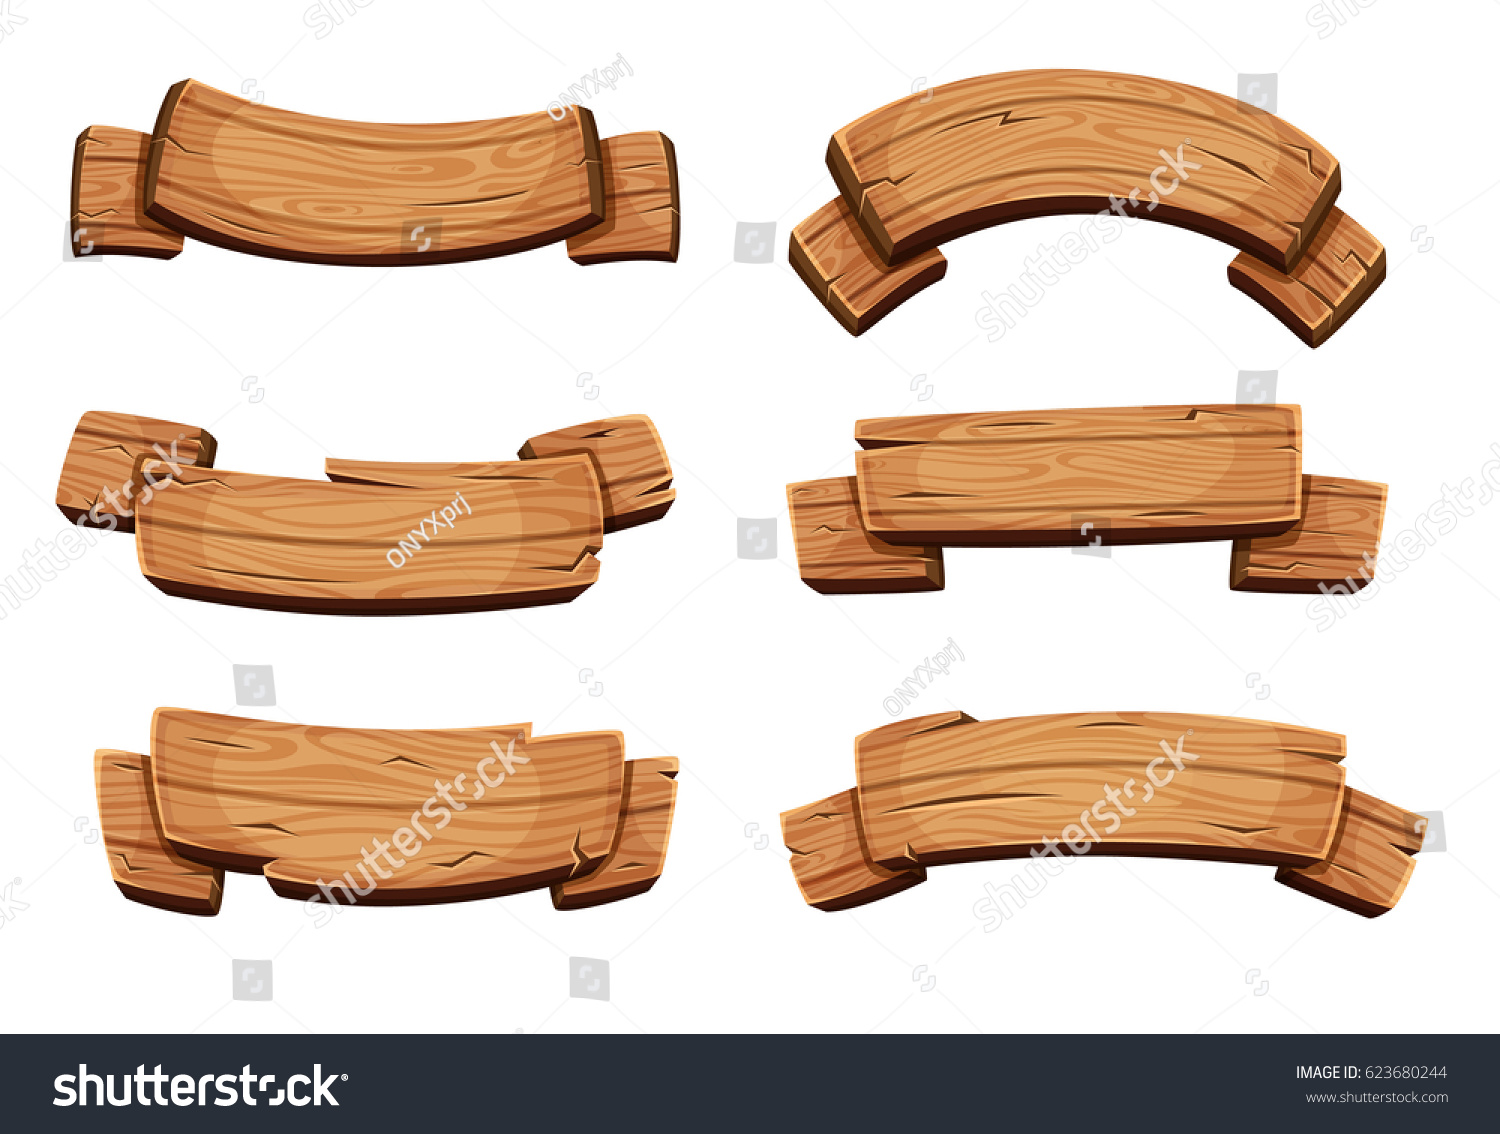 Cartoon brown wooden plate and ribbons. Vector set isolate on white background. Wooden ribbons collection, illustration of wood board